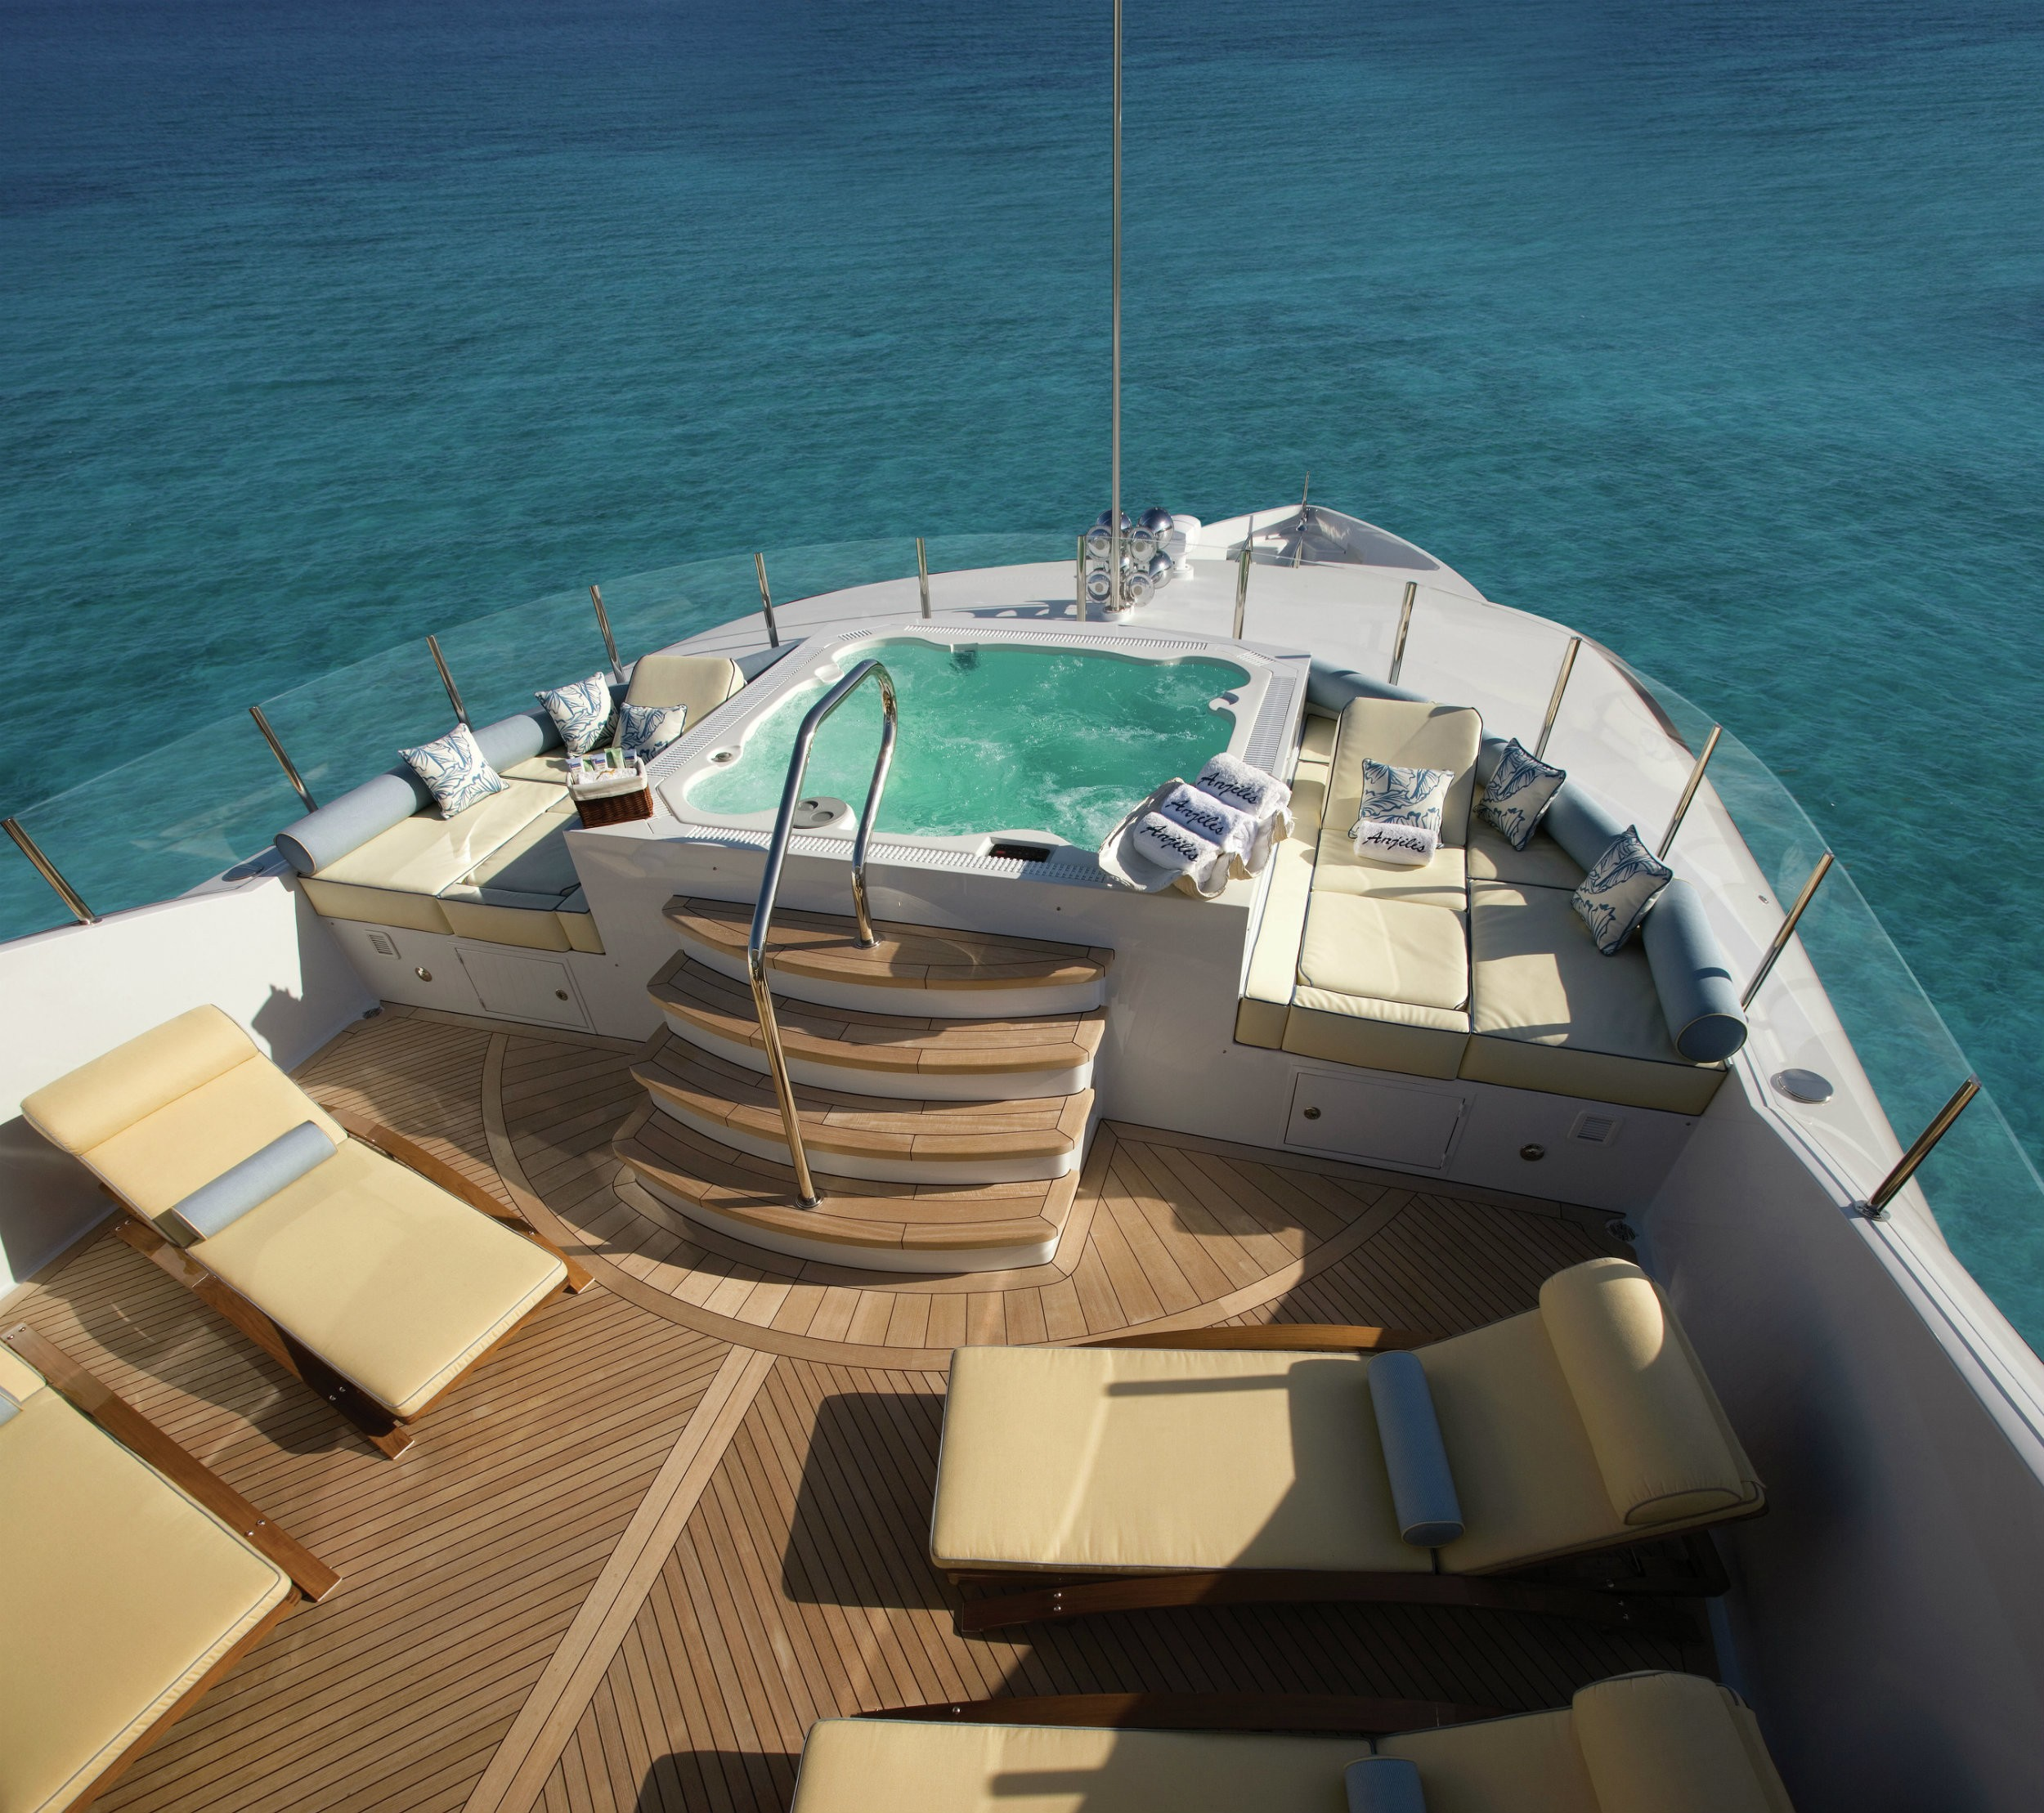 Reef Chief Yacht Charter Details Trinity Yachts